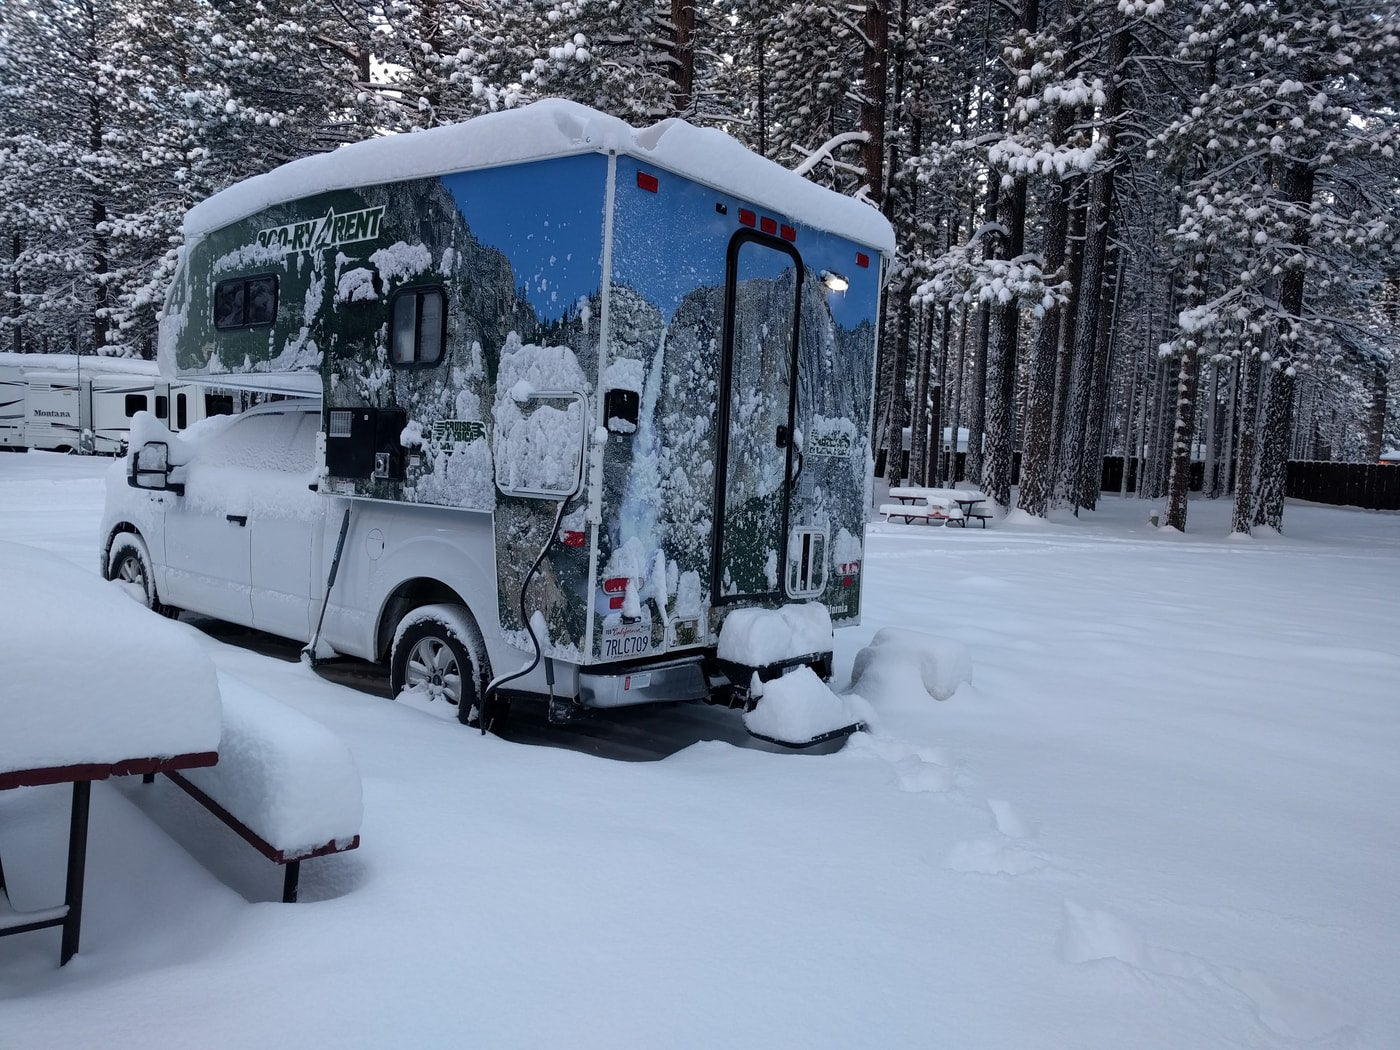 a Snow covered Campervan at Tahoe Valley Campground.